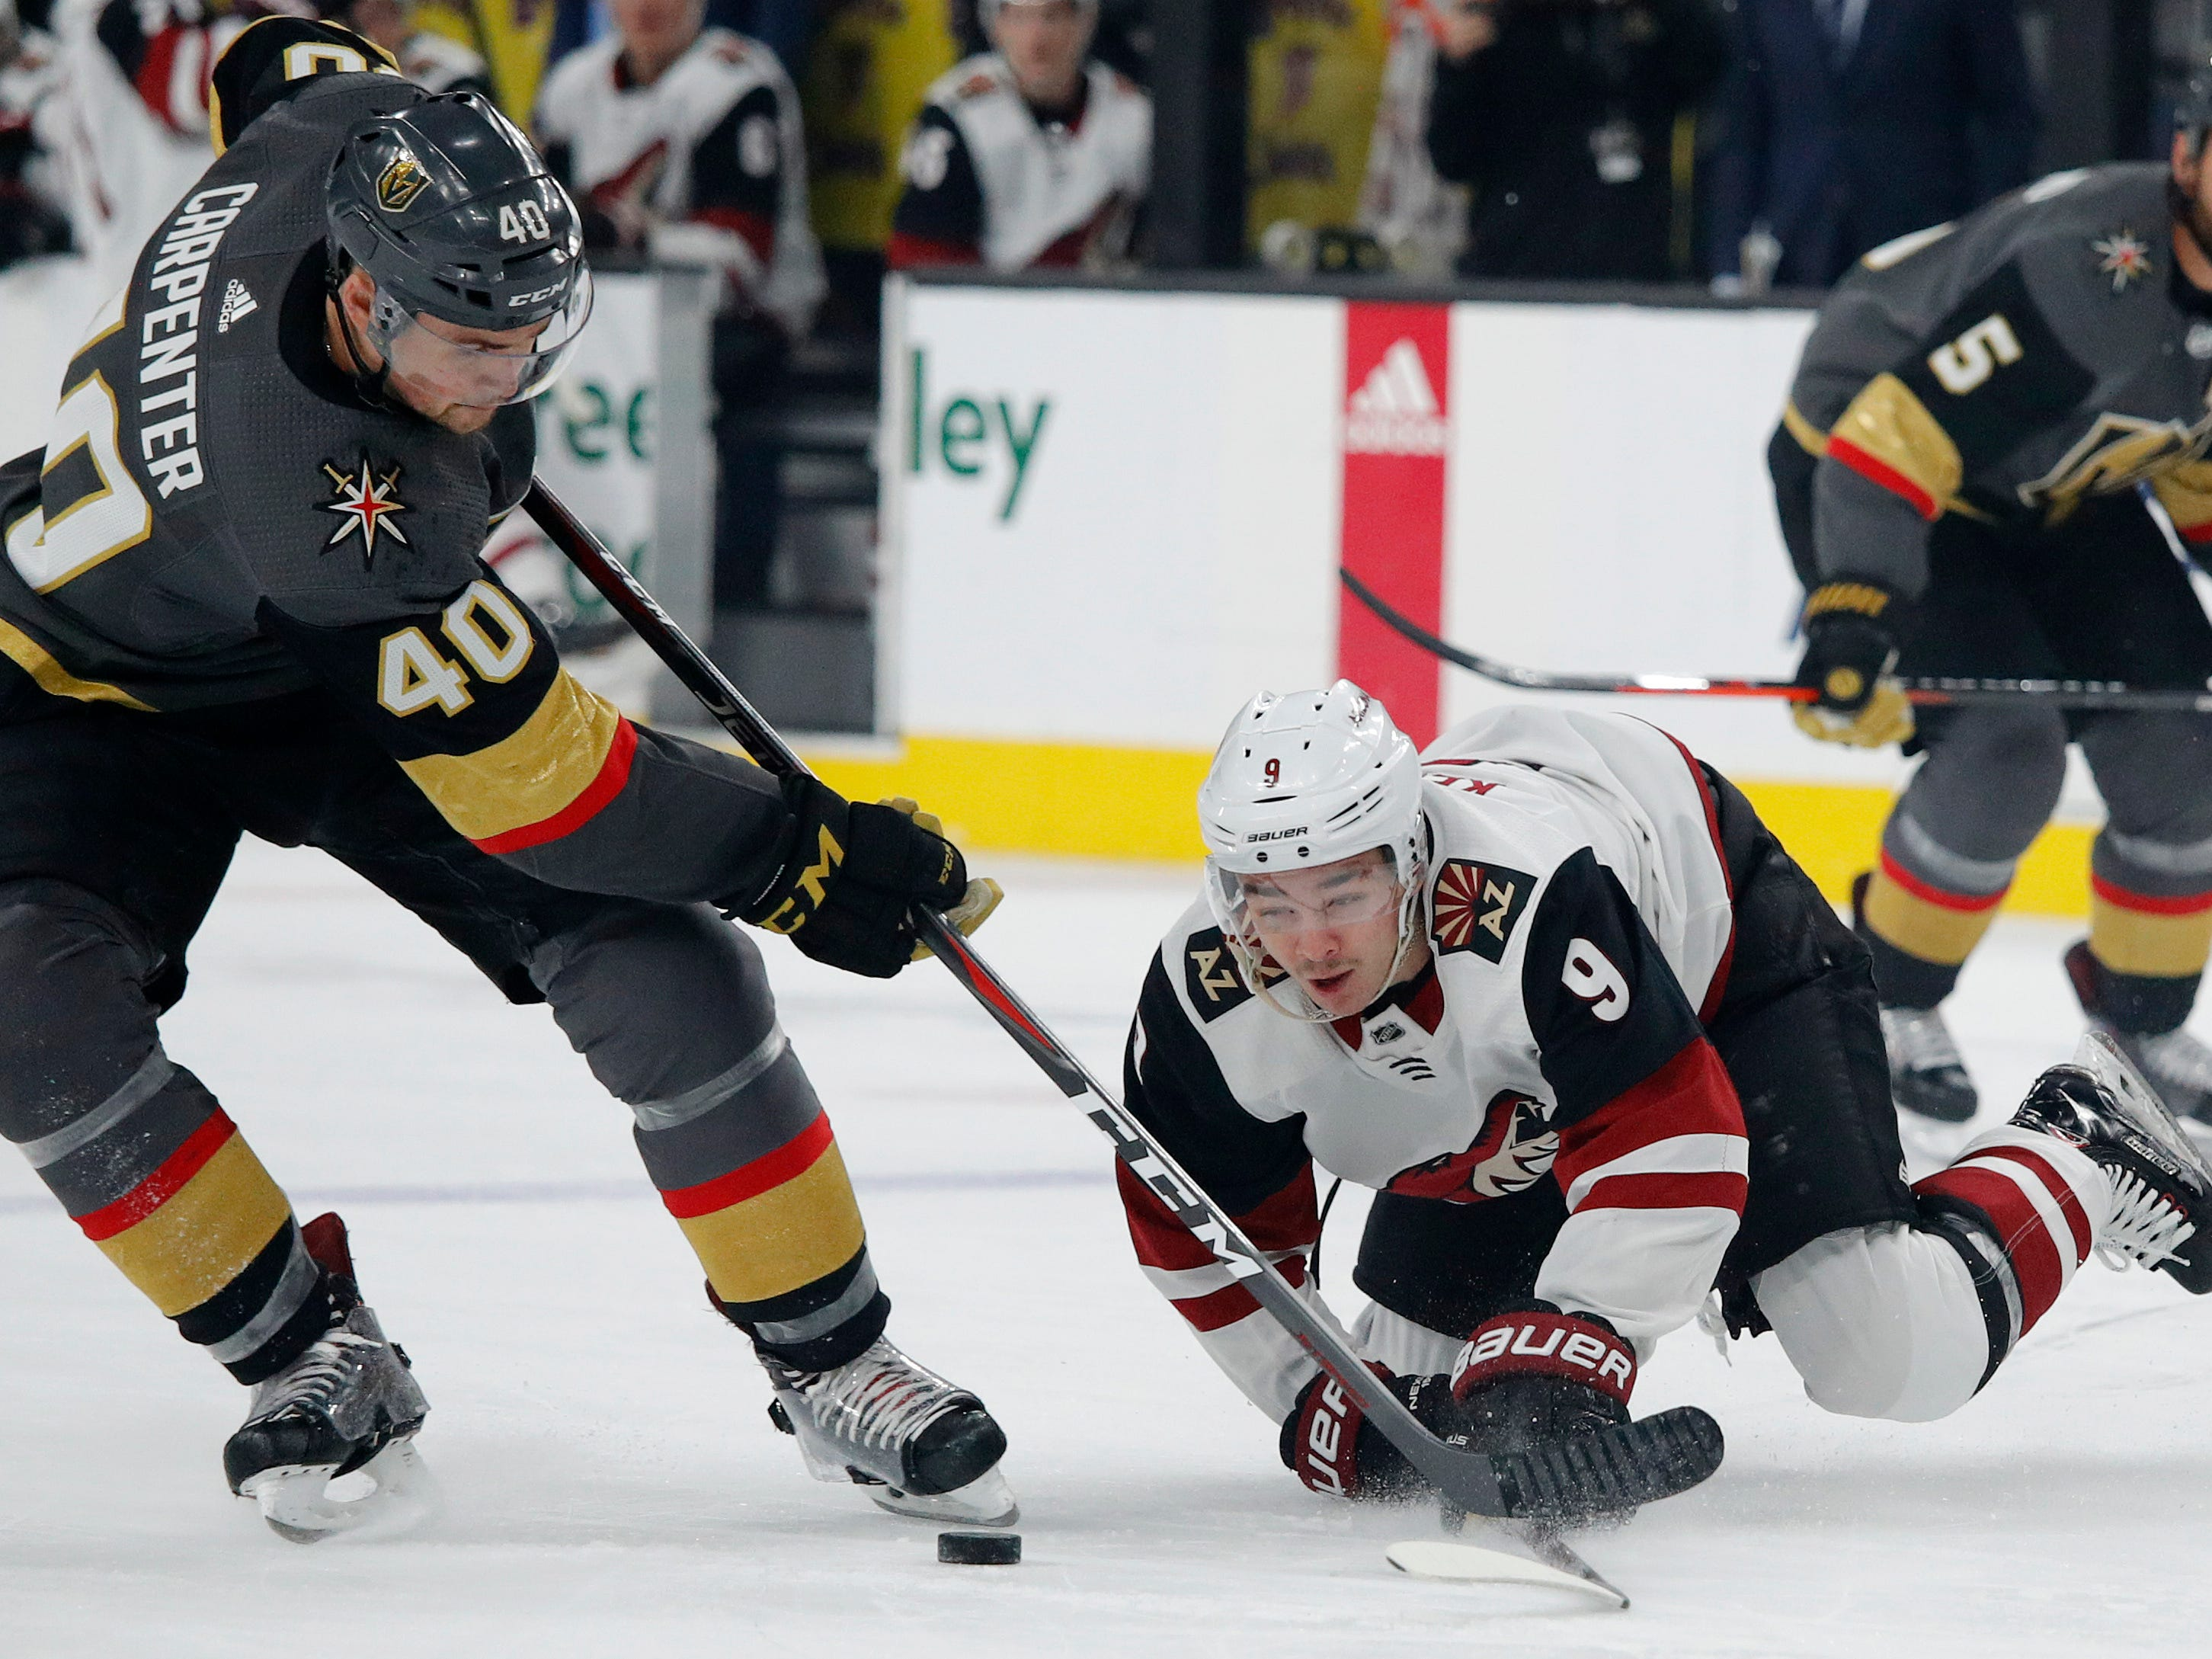 Vegas Golden Knights center Ryan Carpenter (40) and Arizona Coyotes center Clayton Keller (9) vie for the puck during the first period of an NHL hockey game Thursday, April 4, 2019, in Las Vegas.